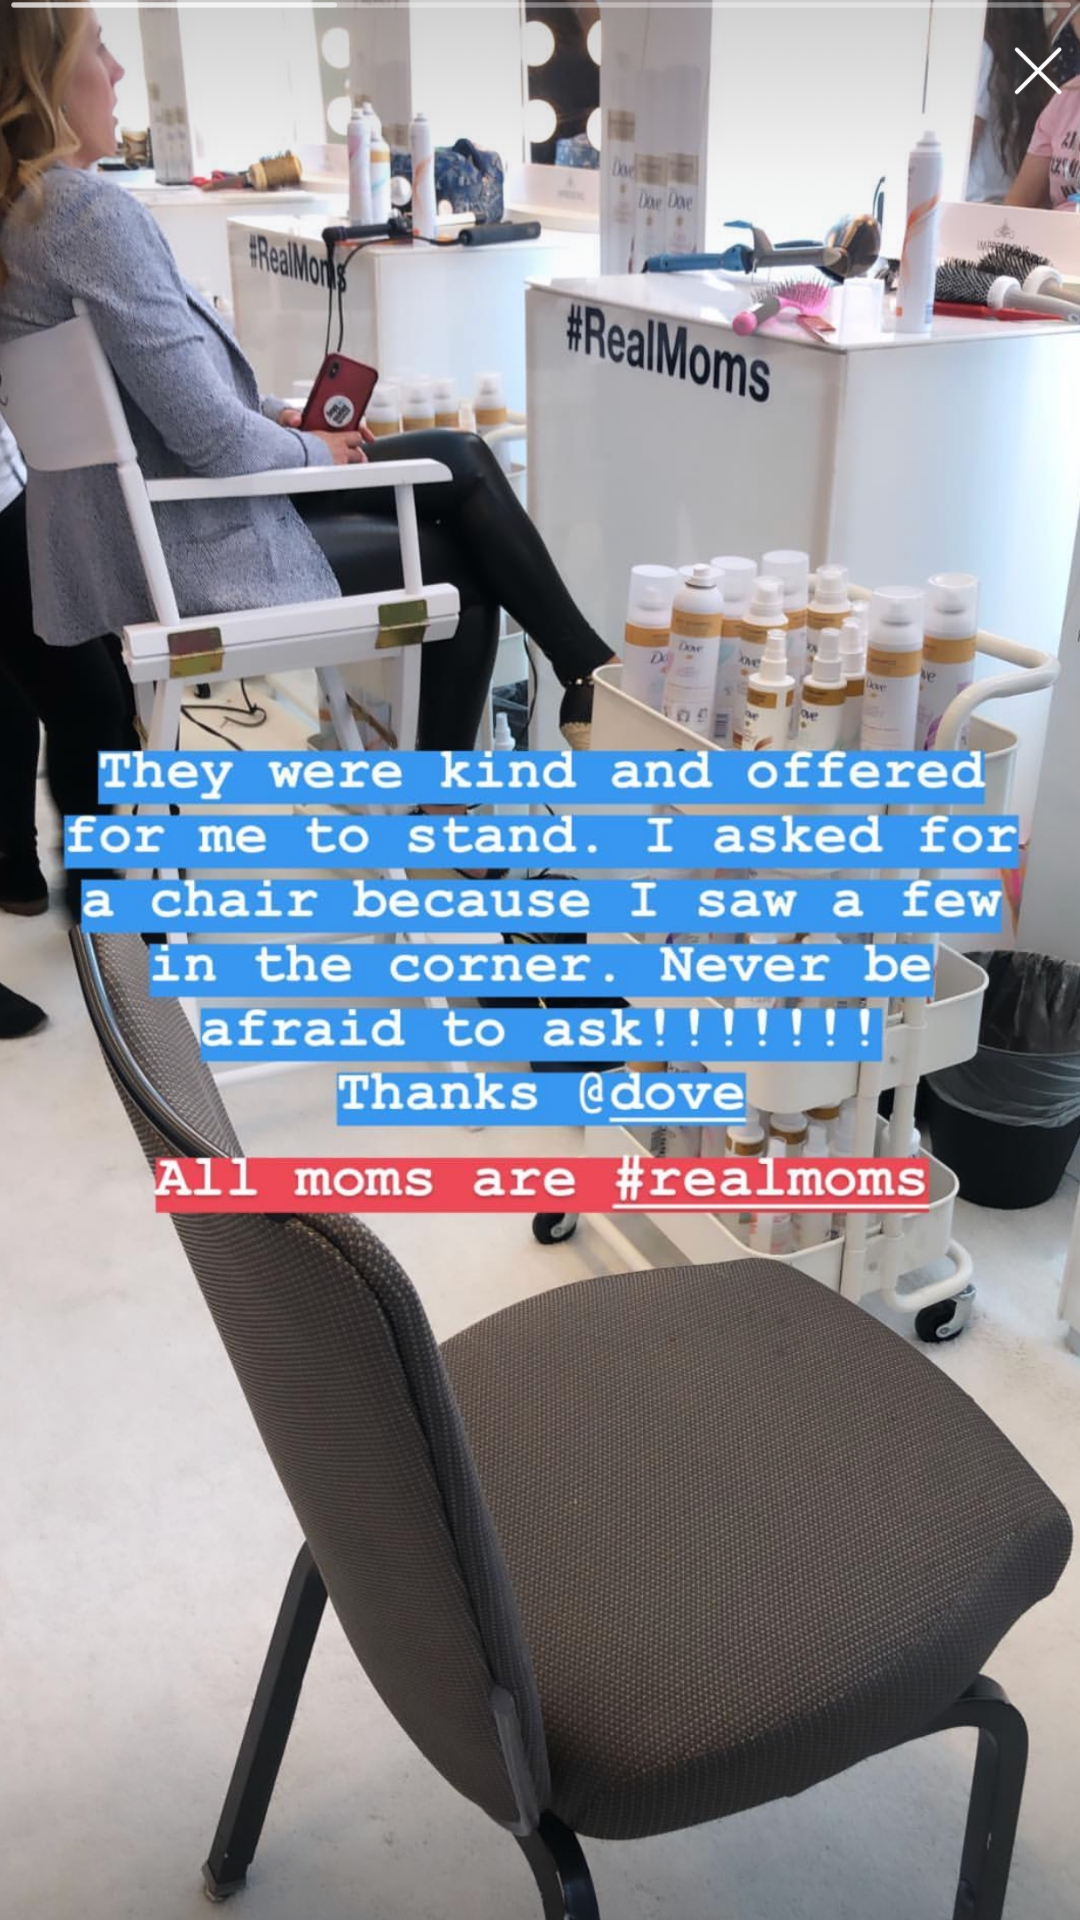 Dove pamper experience with chairs of different sizes